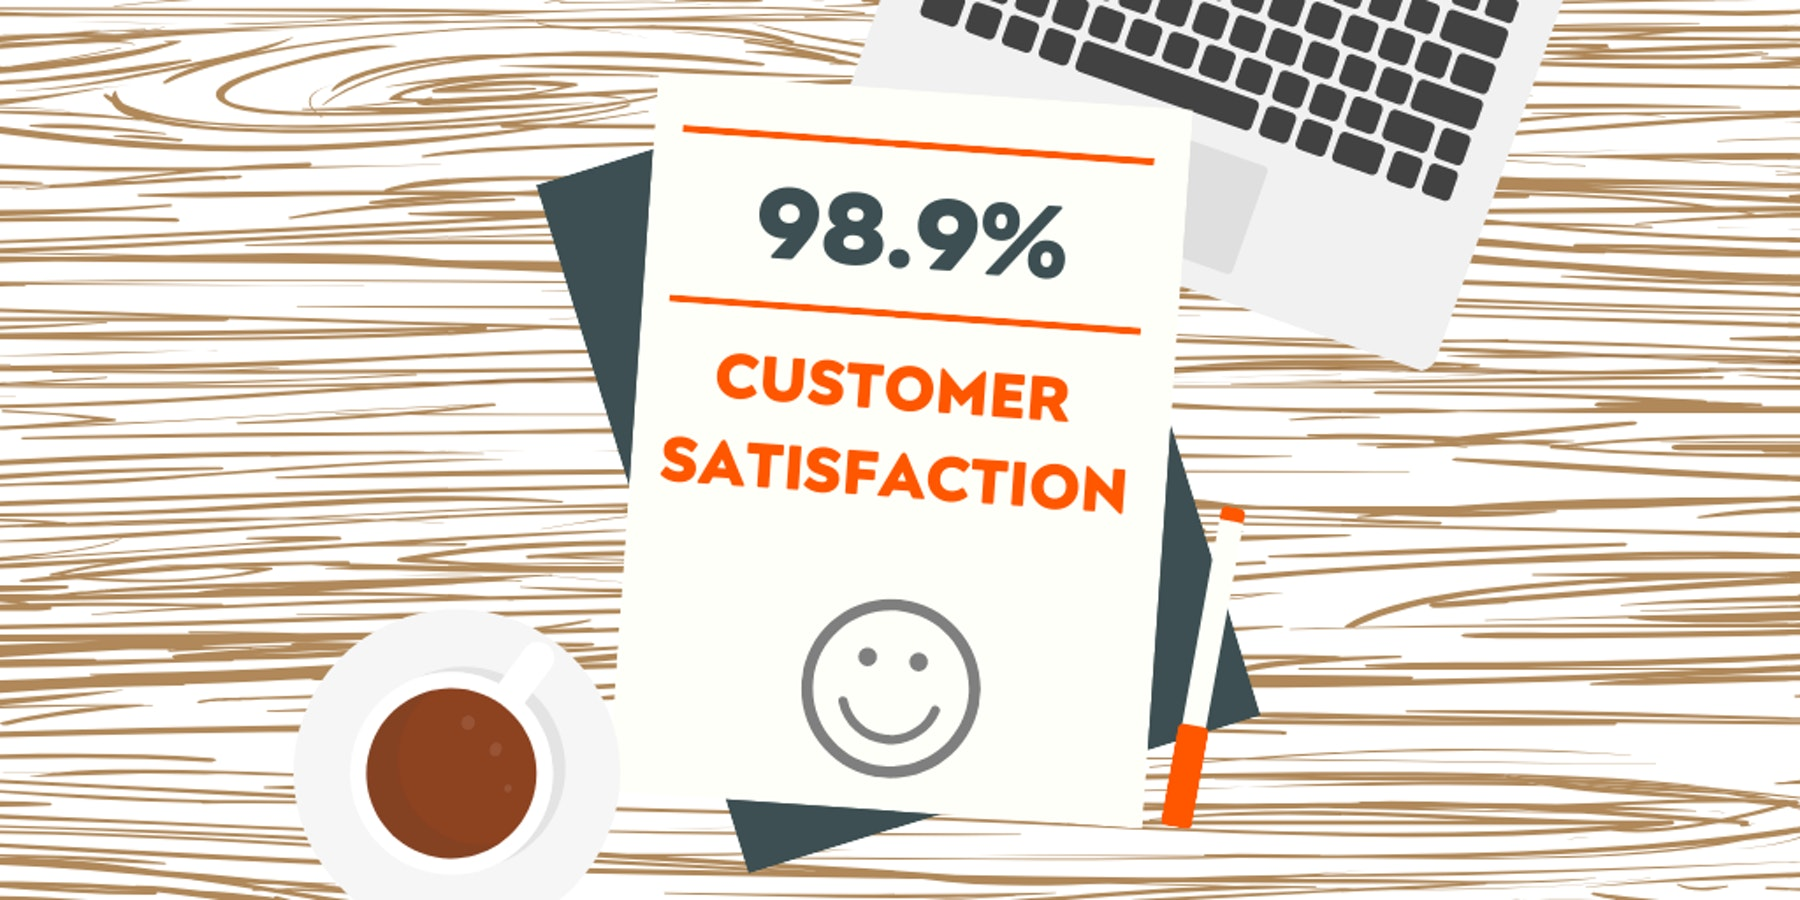 Glantus Achieves 98.9% Customer Satisfaction in 2018